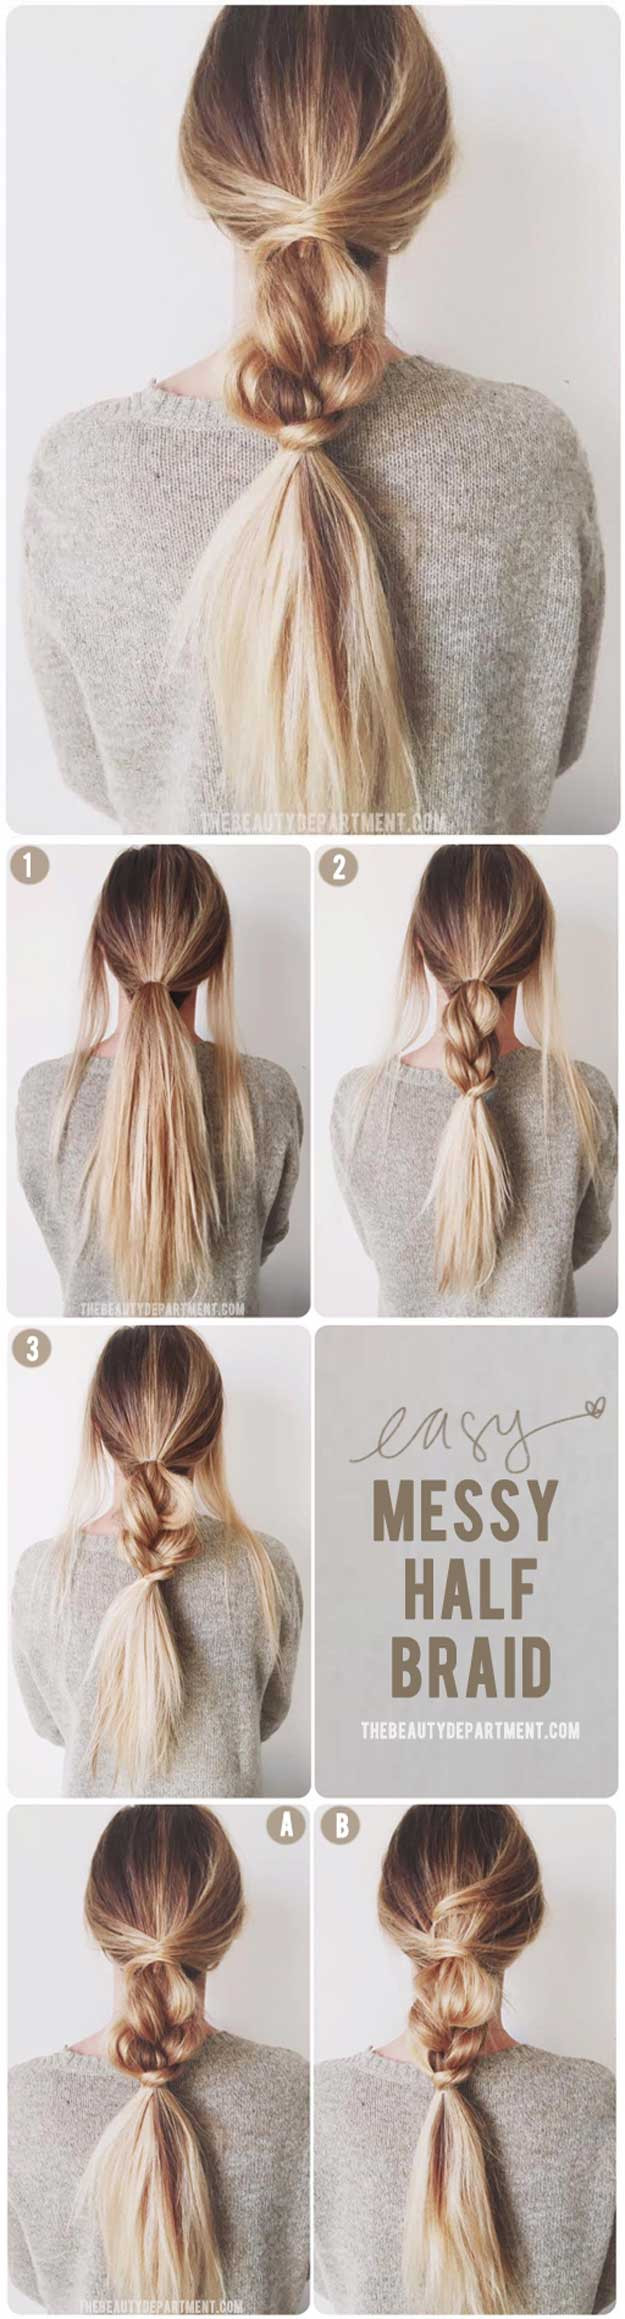 Easy Hairstyles For Teens  33 Best Hairstyles for Teens The Goddess